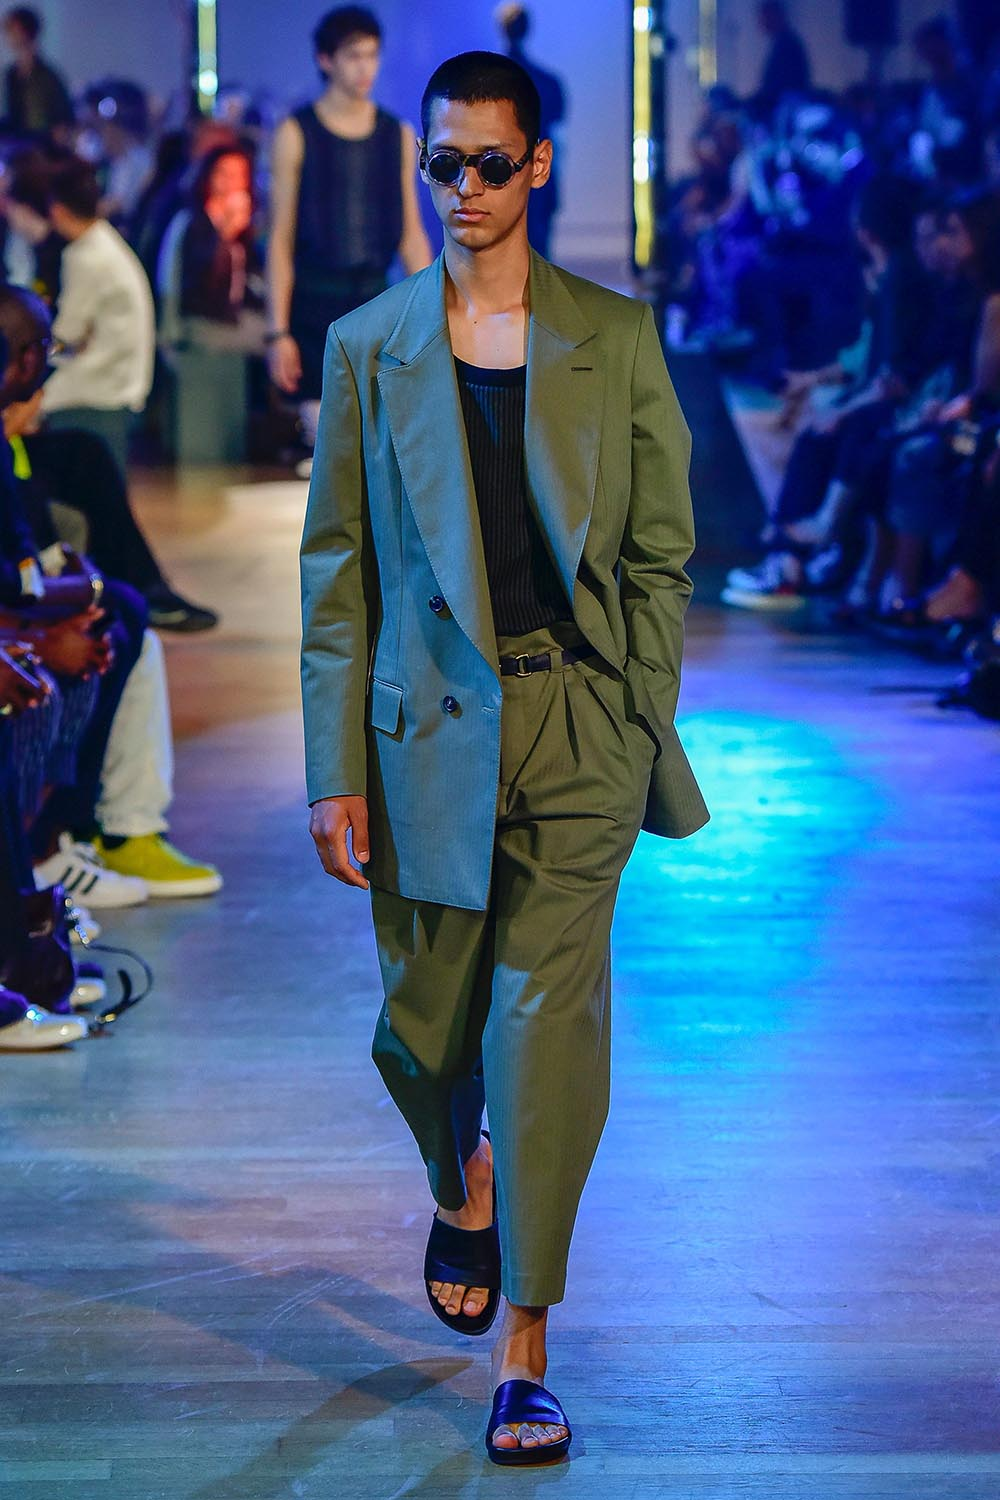 Cerruti 1881 Paris Fashion Week Men's SS19 - Sagaboi - Look 3